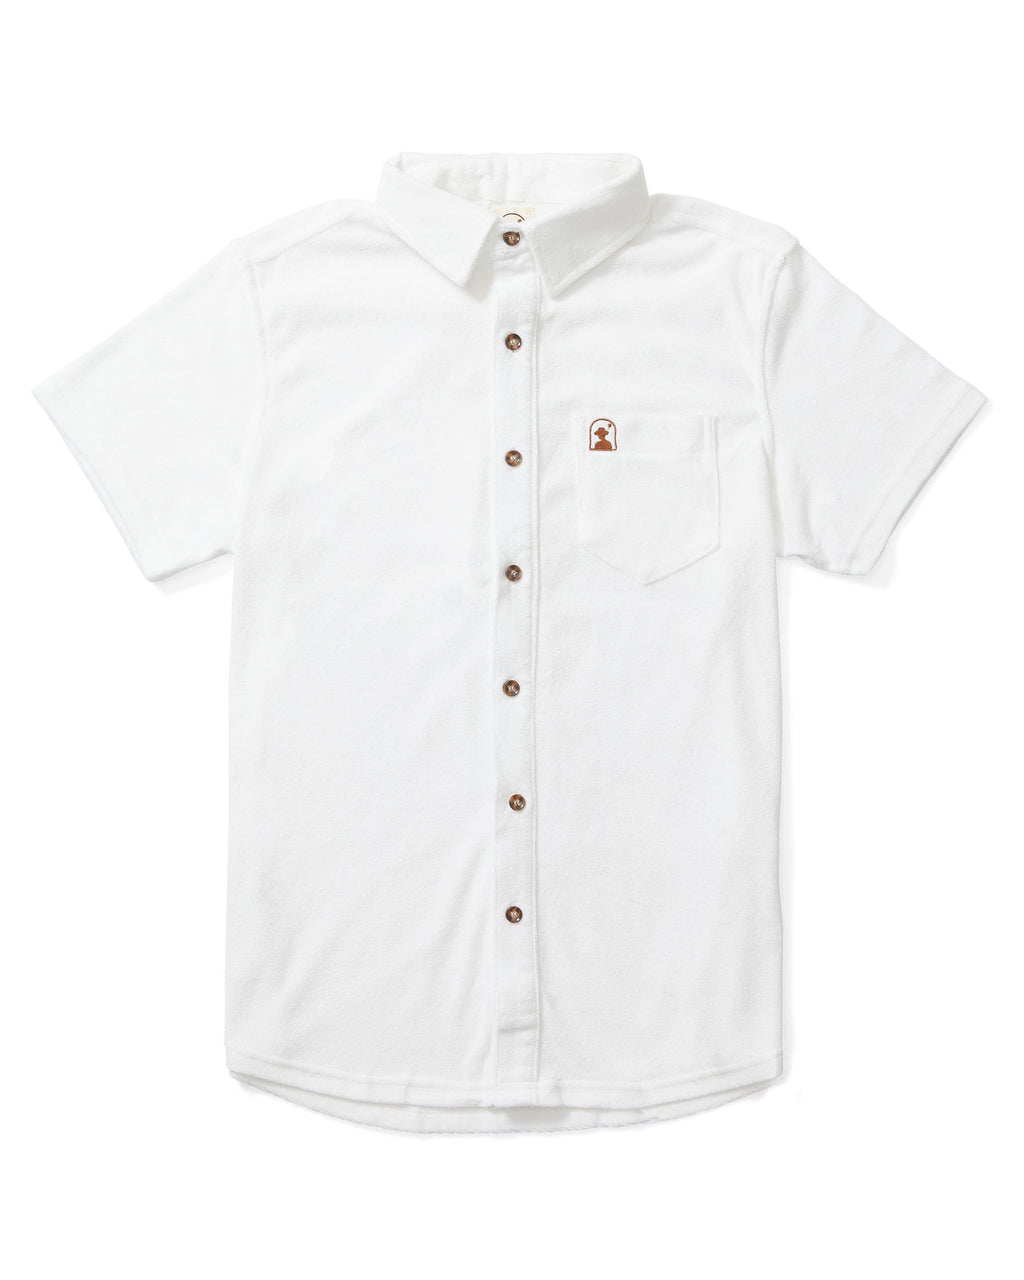 The Tropez Terry Cloth Shirt - Vintage Ivory